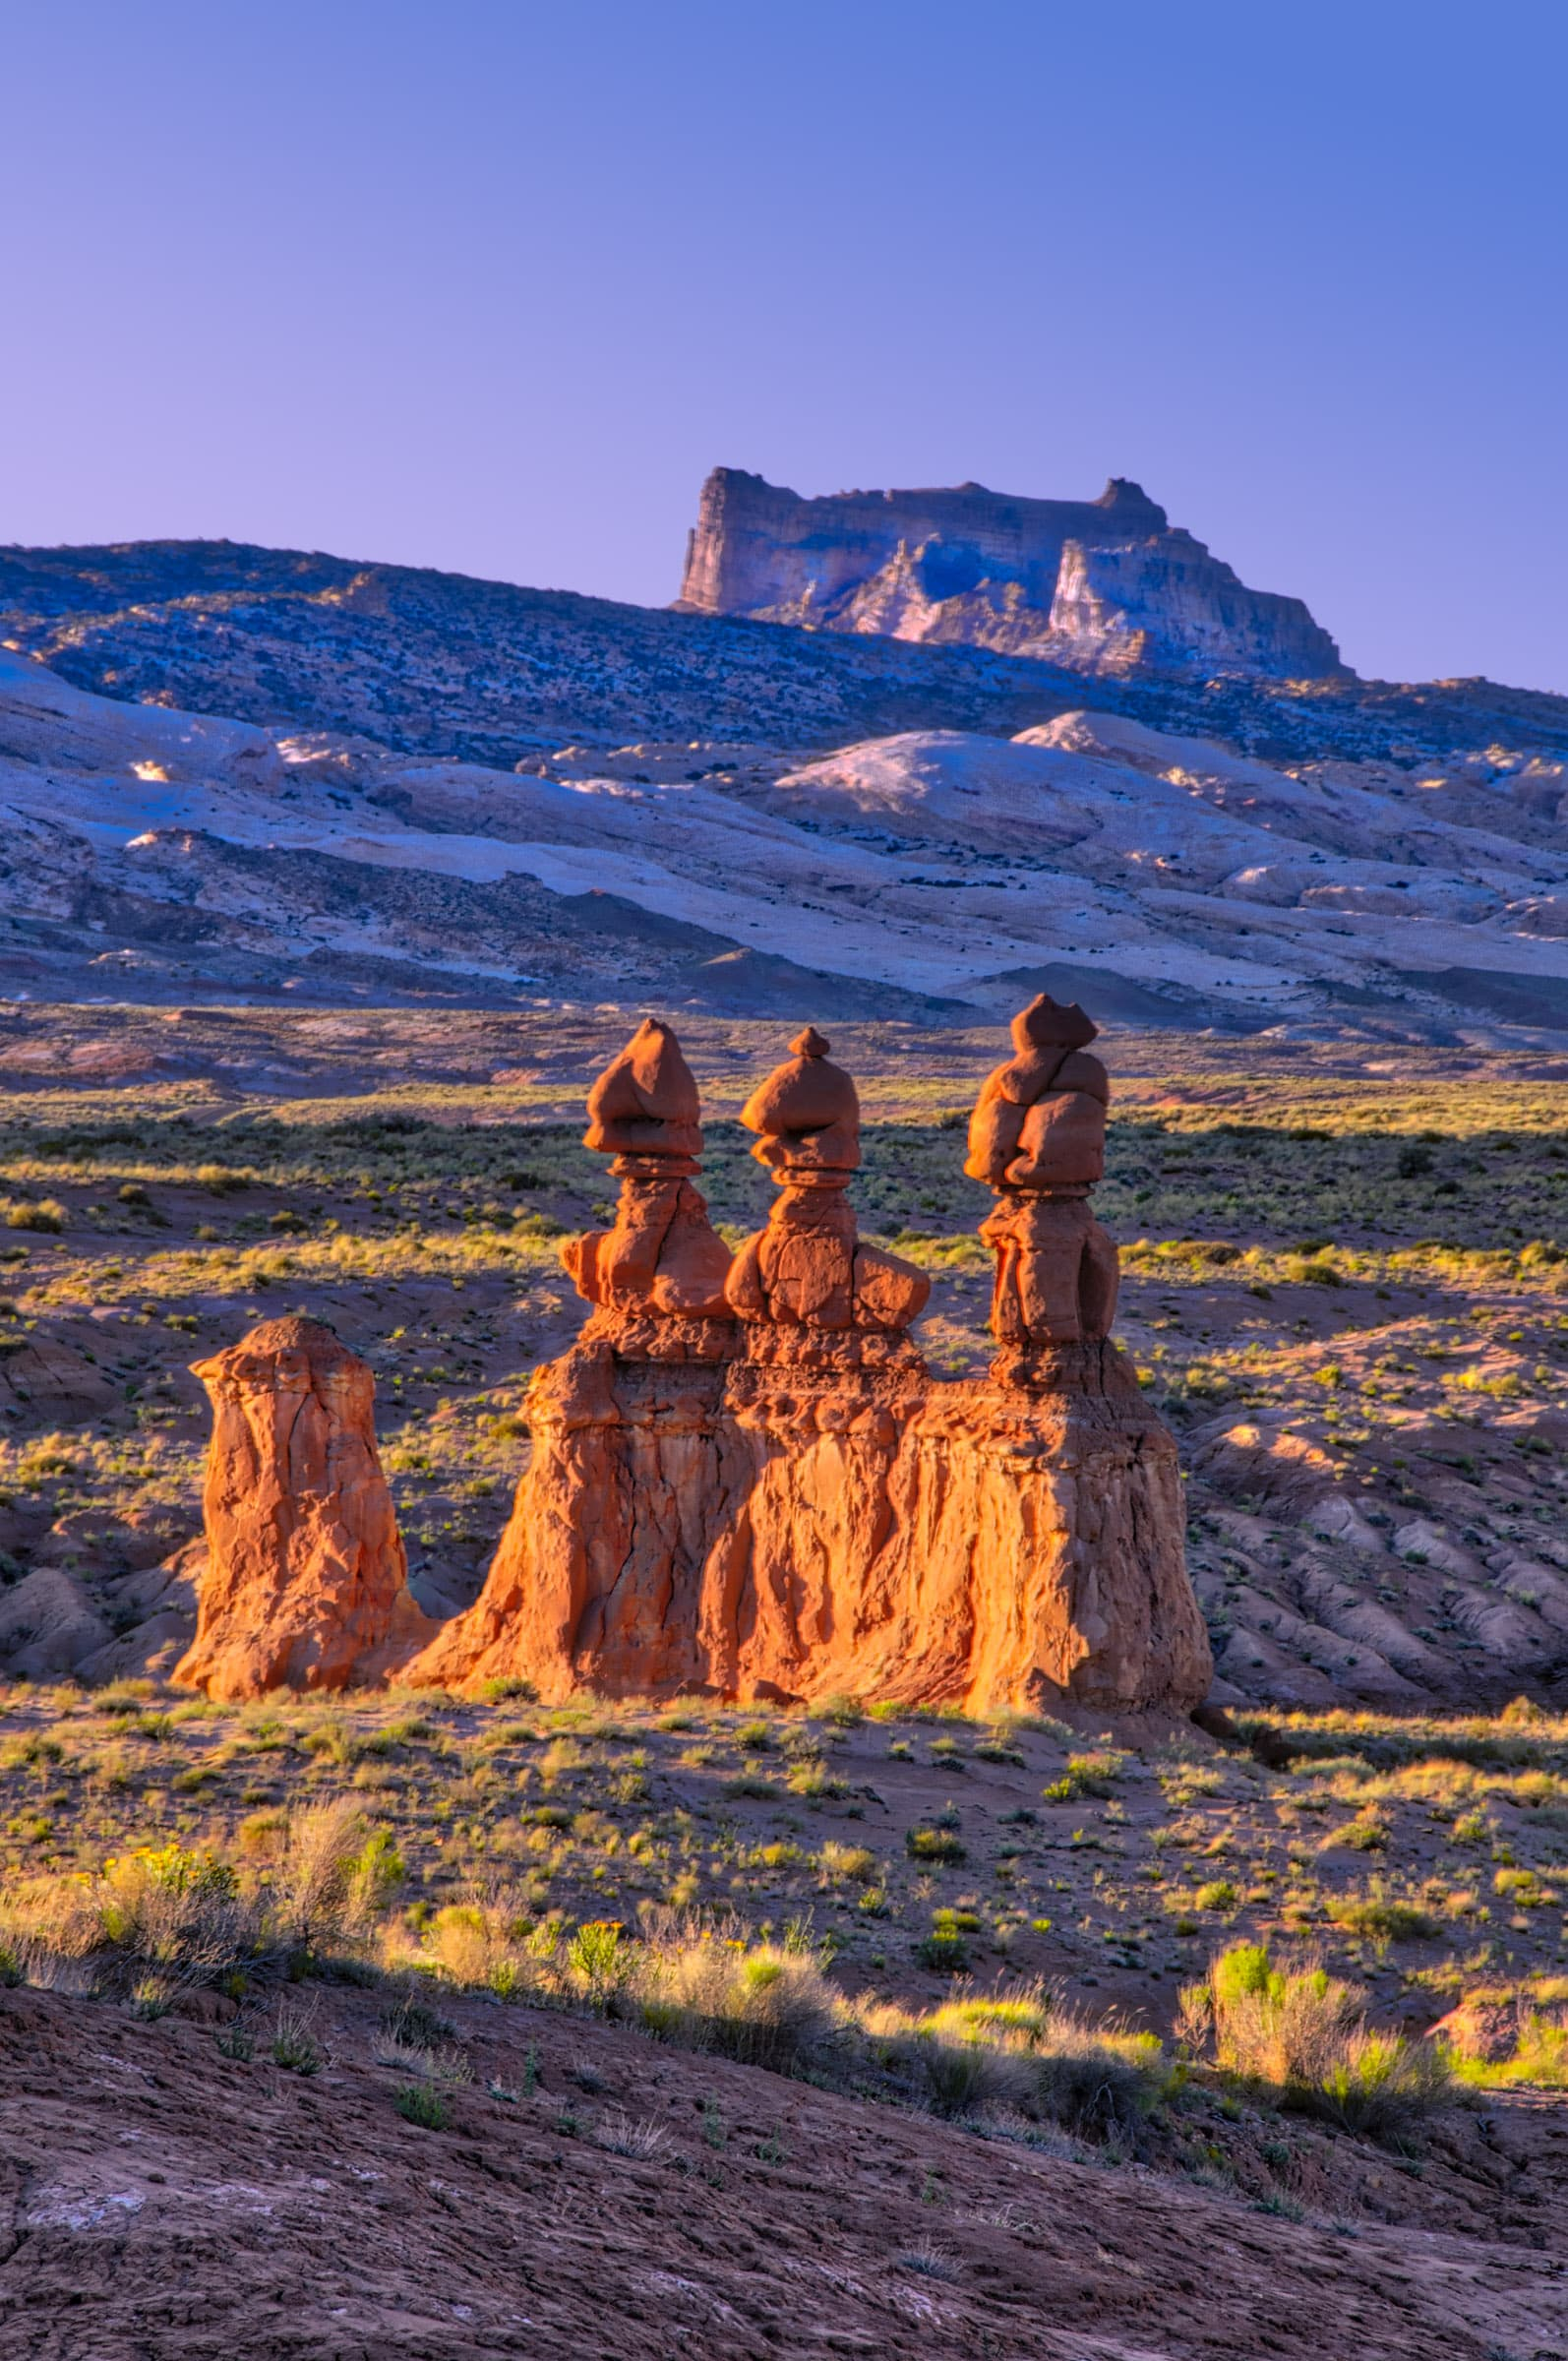 The late afternoon sun warms the formation known as The Judges in Goblin Valley State Park near Hanksville, Utah.